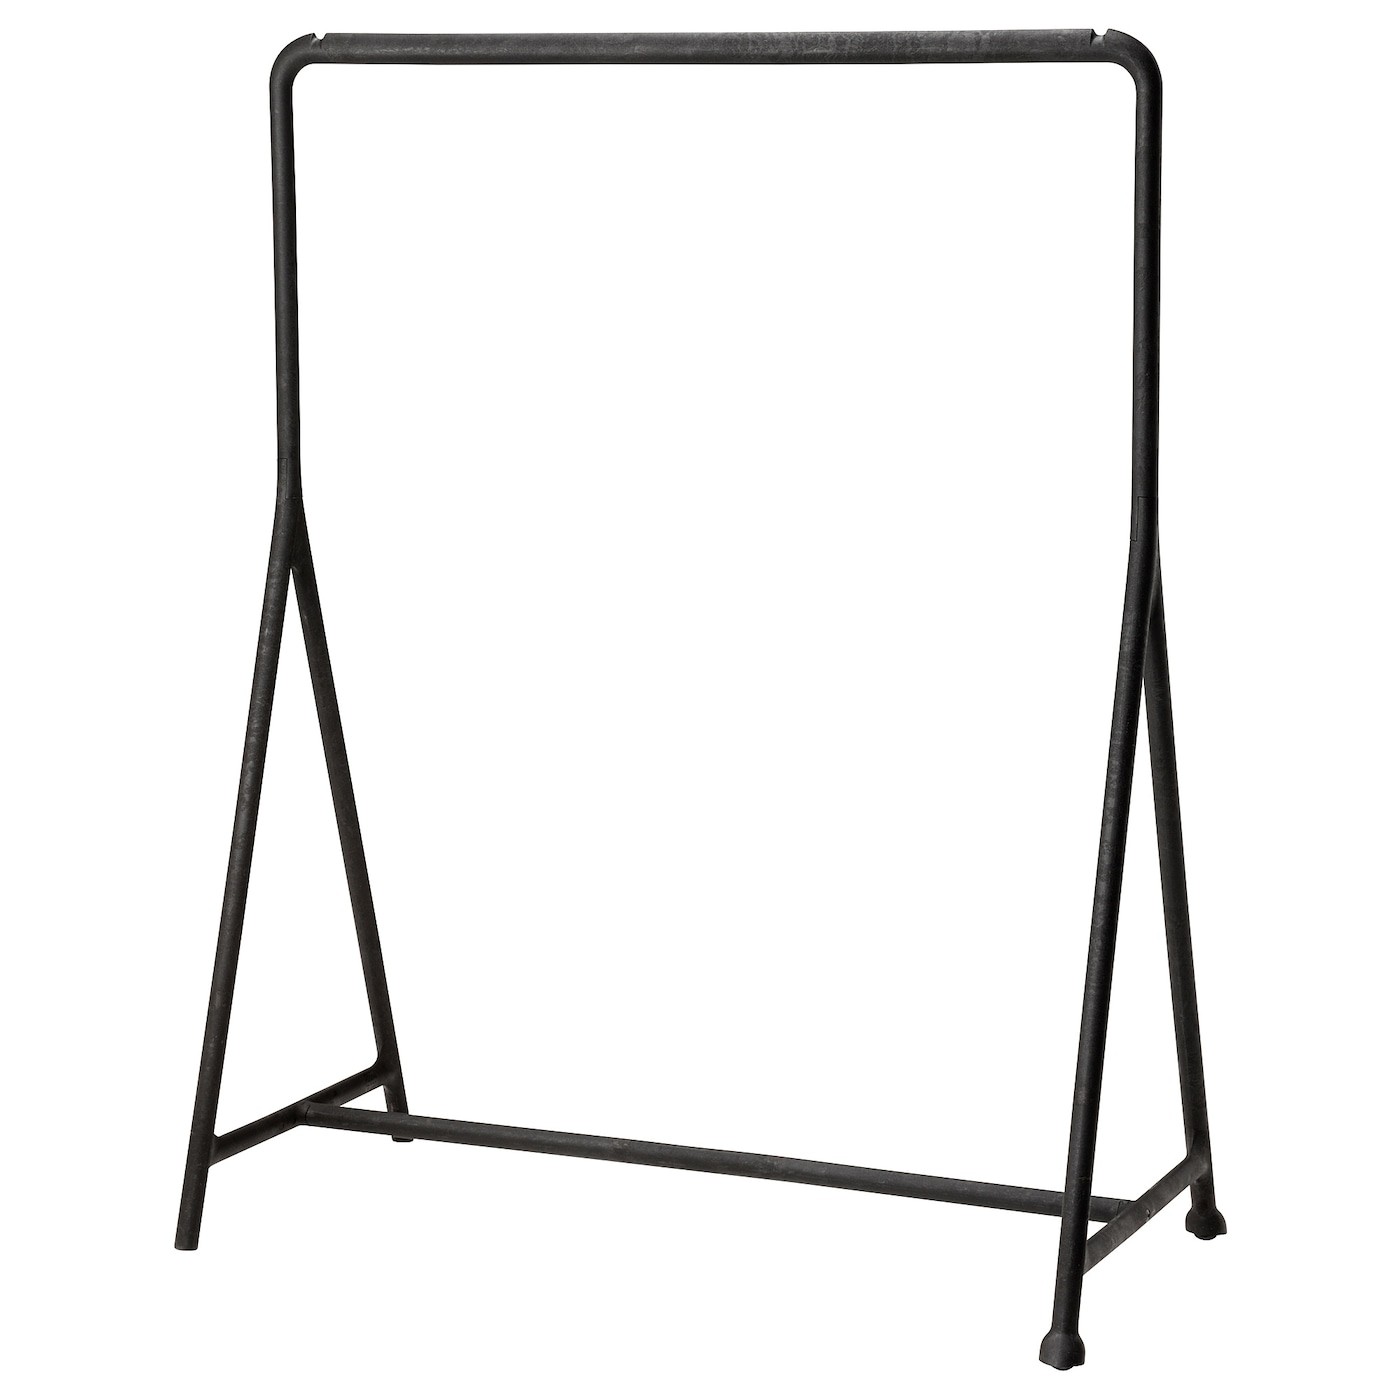 IKEA TURBO clothes rack, in/outdoor Suitable for both indoor and outdoor use.